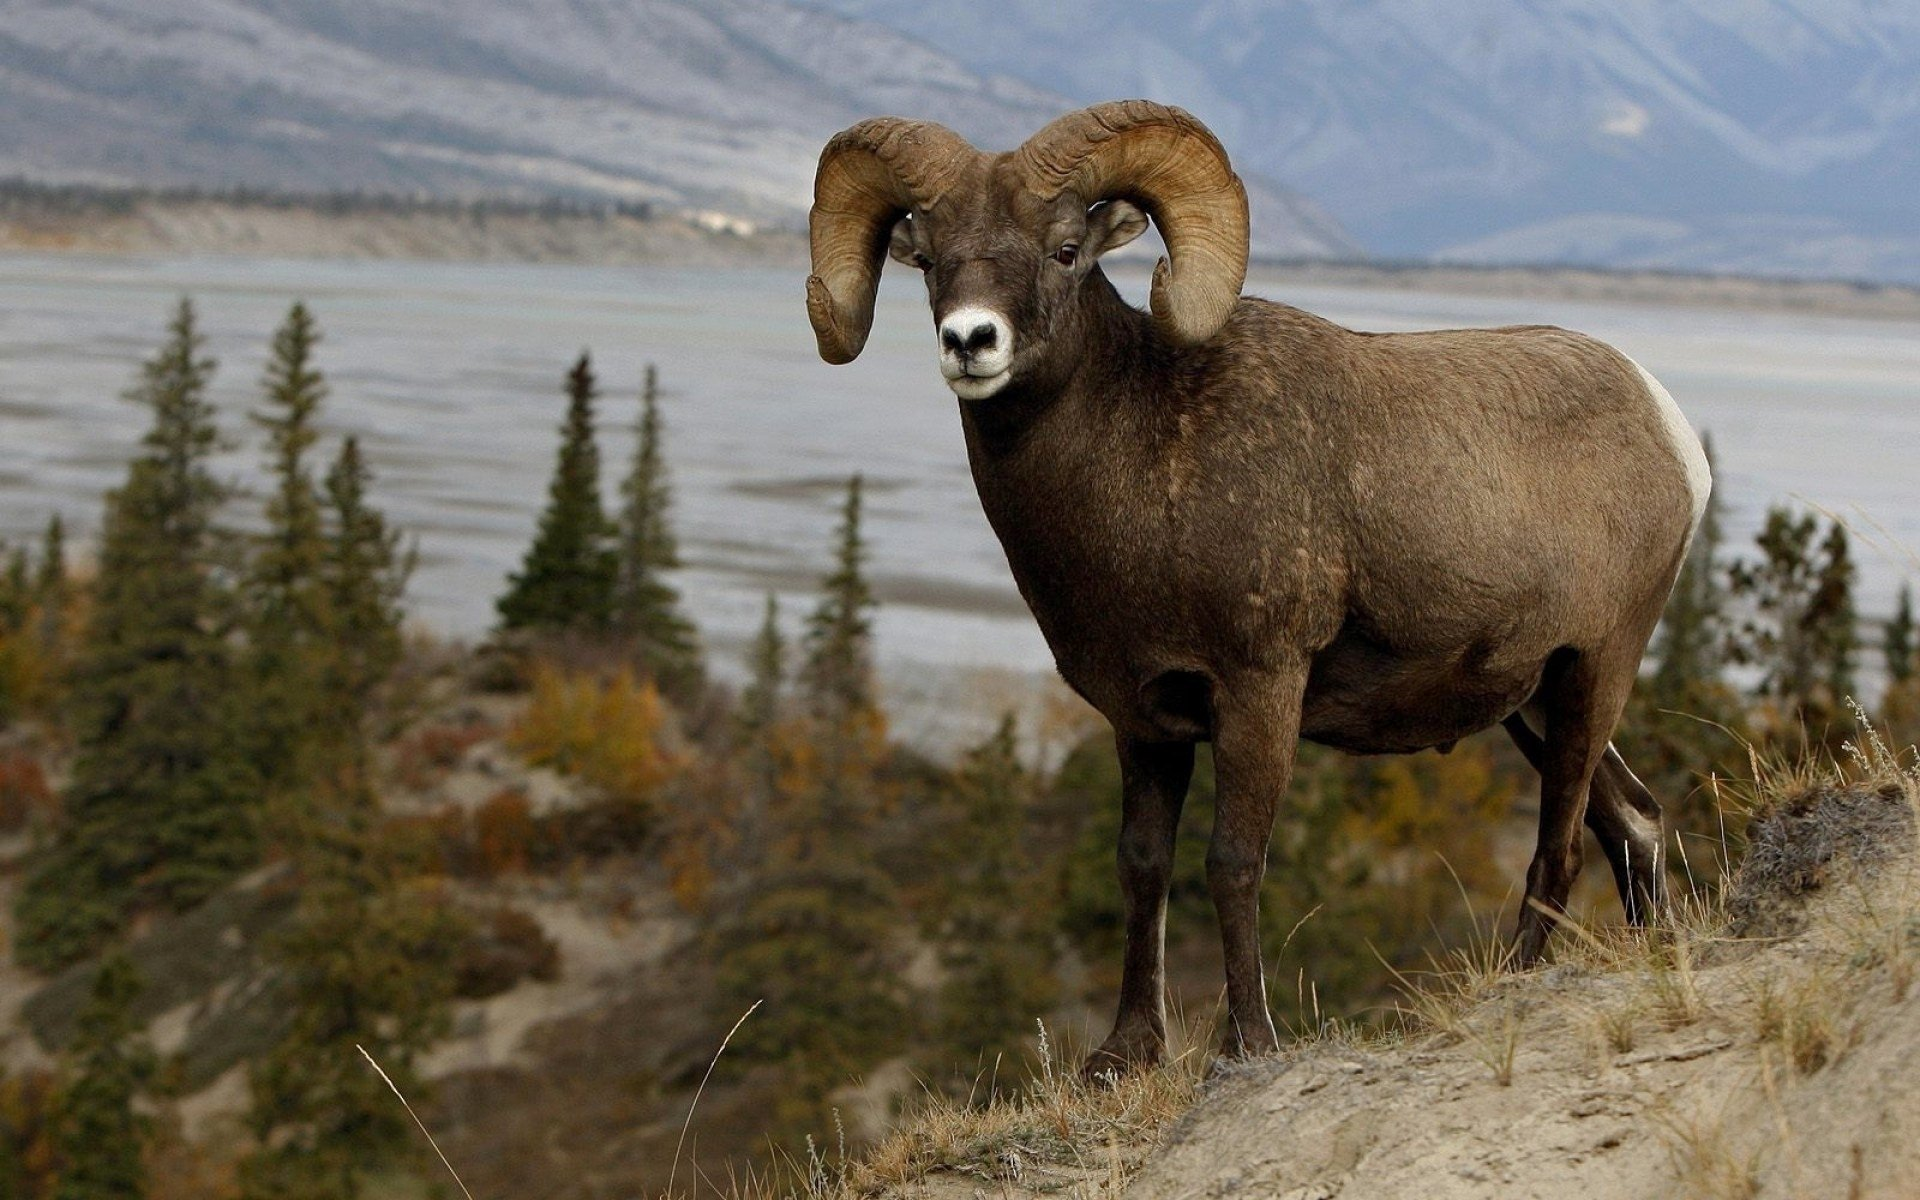 Fall Scenery Hd Wallpaper Mountain Sheep Full Hd Wallpaper And Background Image